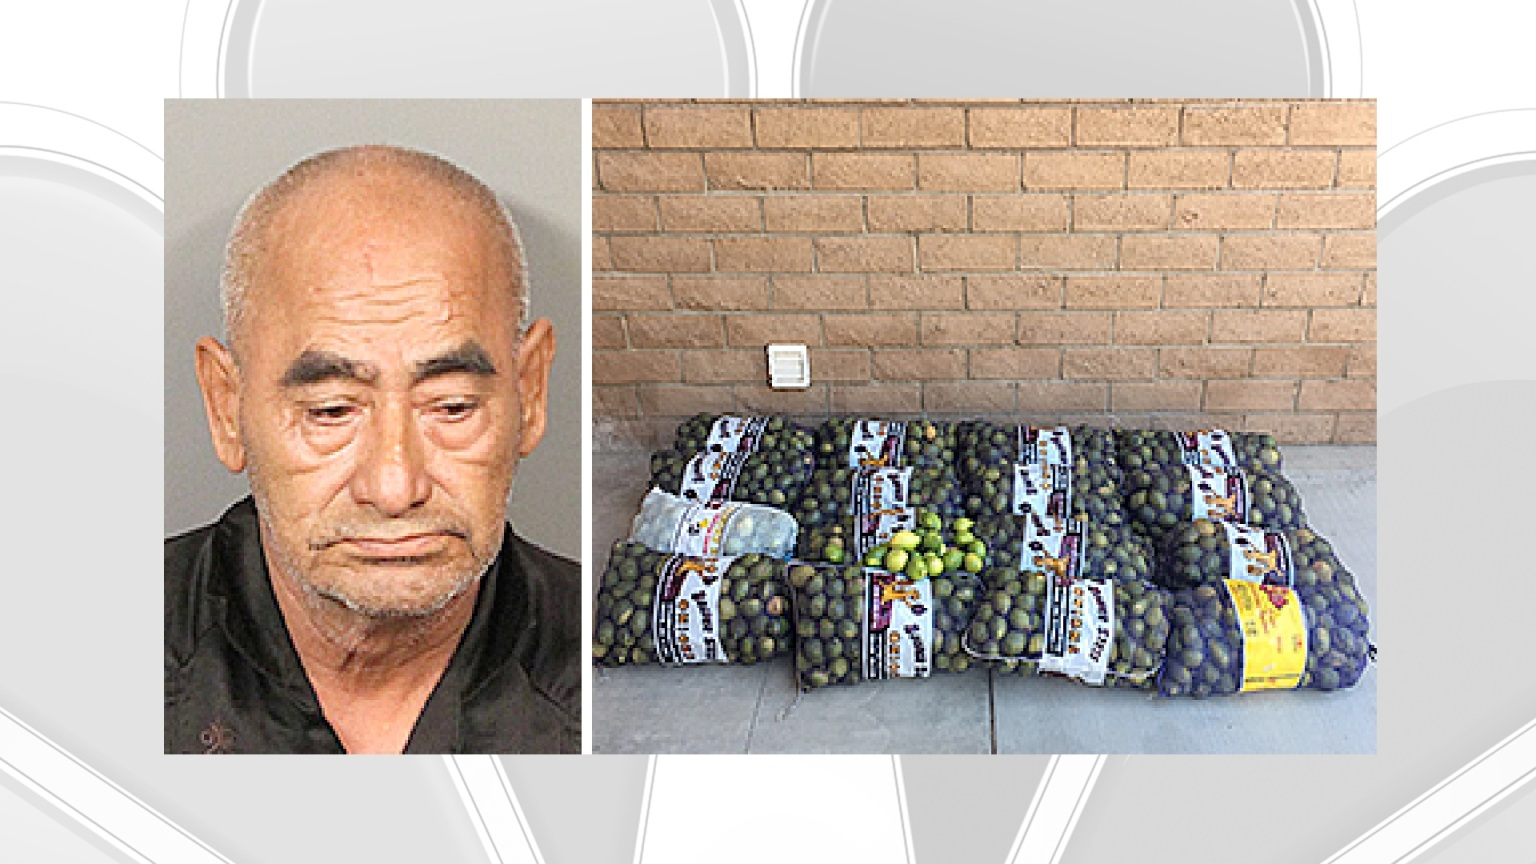 Man Accused of Stealing 800 Pounds of Lemons From Coachella Valley Farm